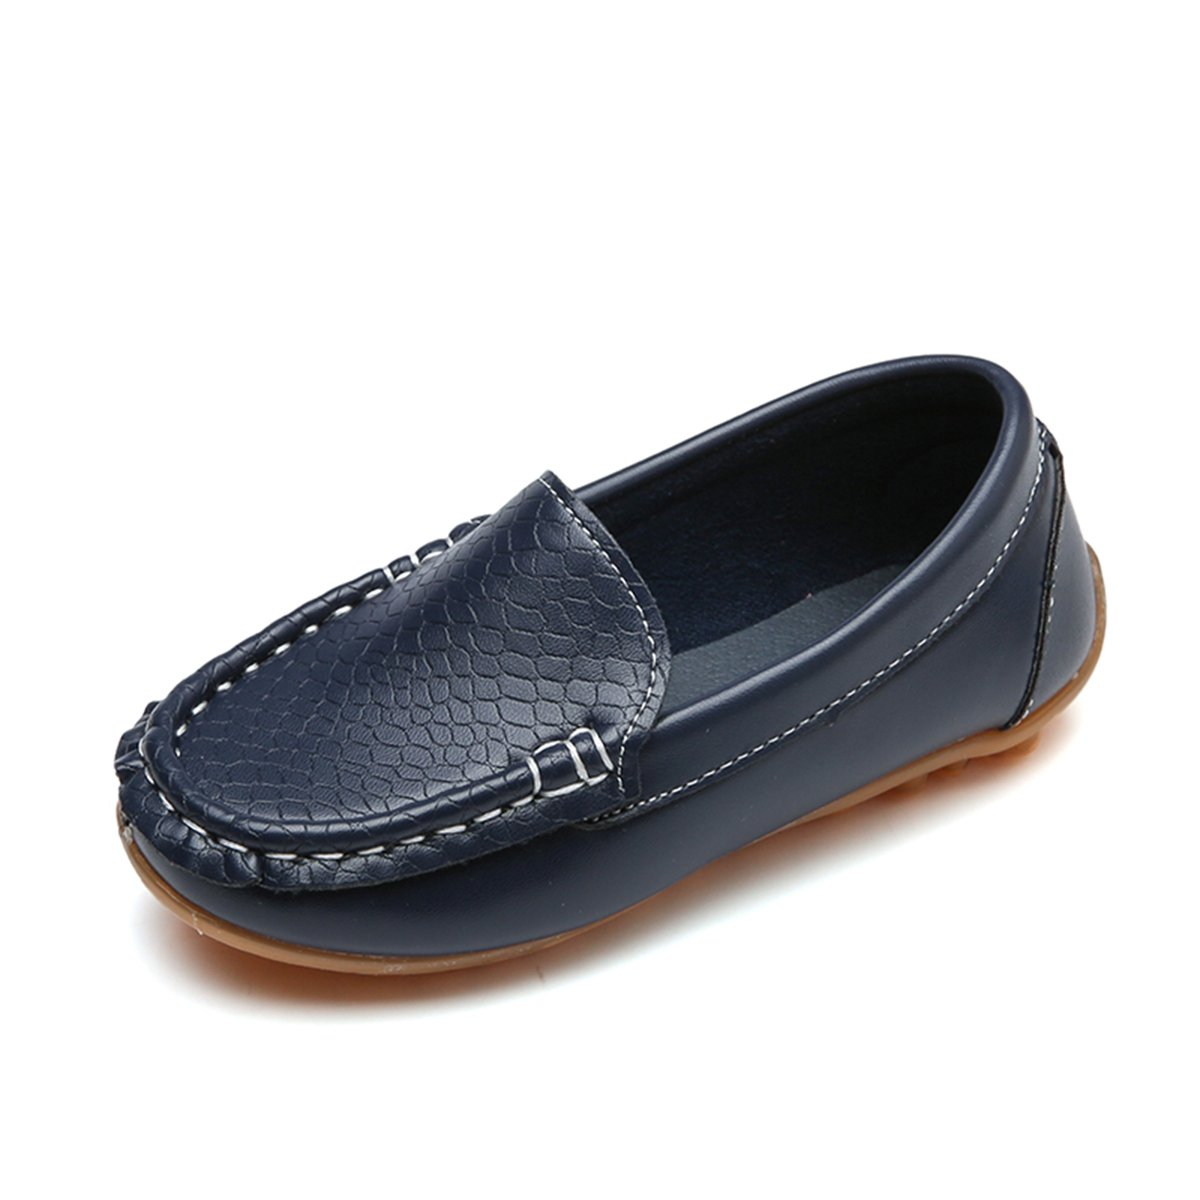 L-RUN Kids Leather Loafer Penny Slip On Shoes Casual Walking Shoes Navy 8.5 M US Toddler